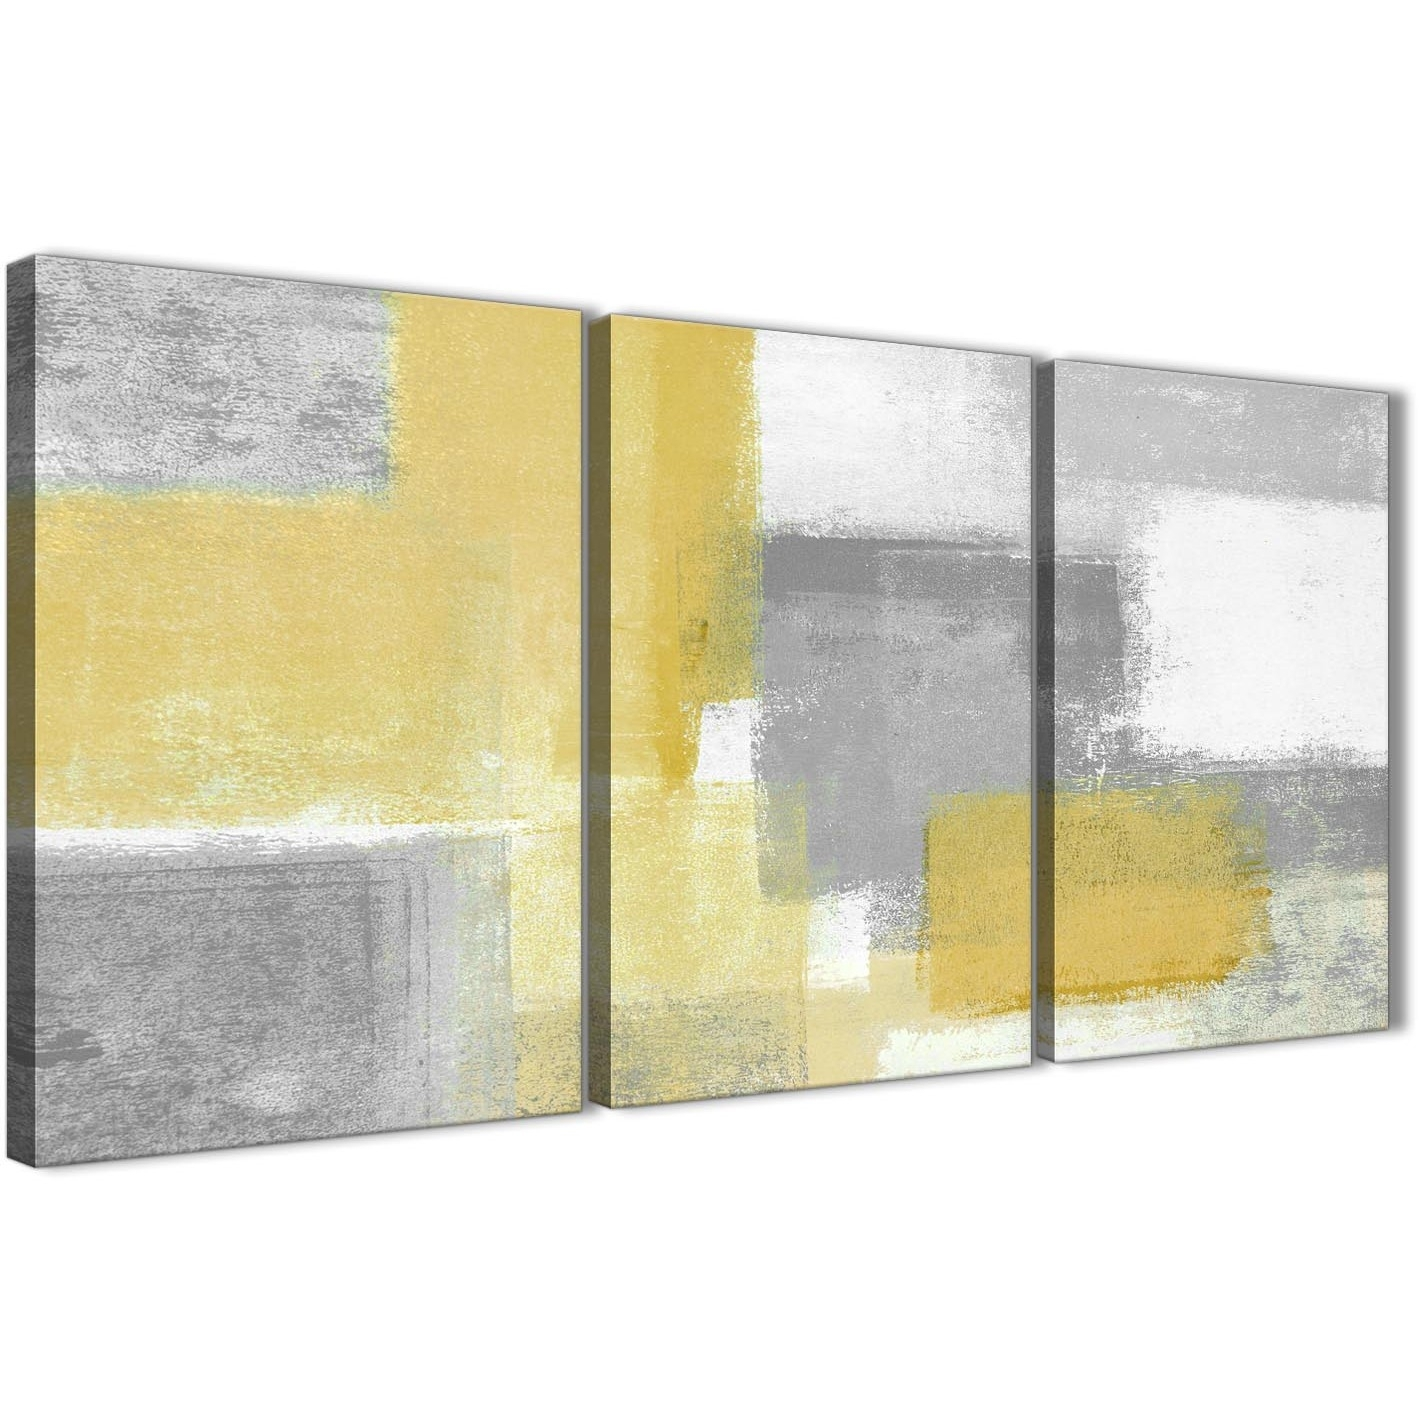 3 Panel Mustard Yellow Grey Kitchen Canvas Wall Art Decor – Abstract With Regard To 2018 Grey Wall Art (View 4 of 20)